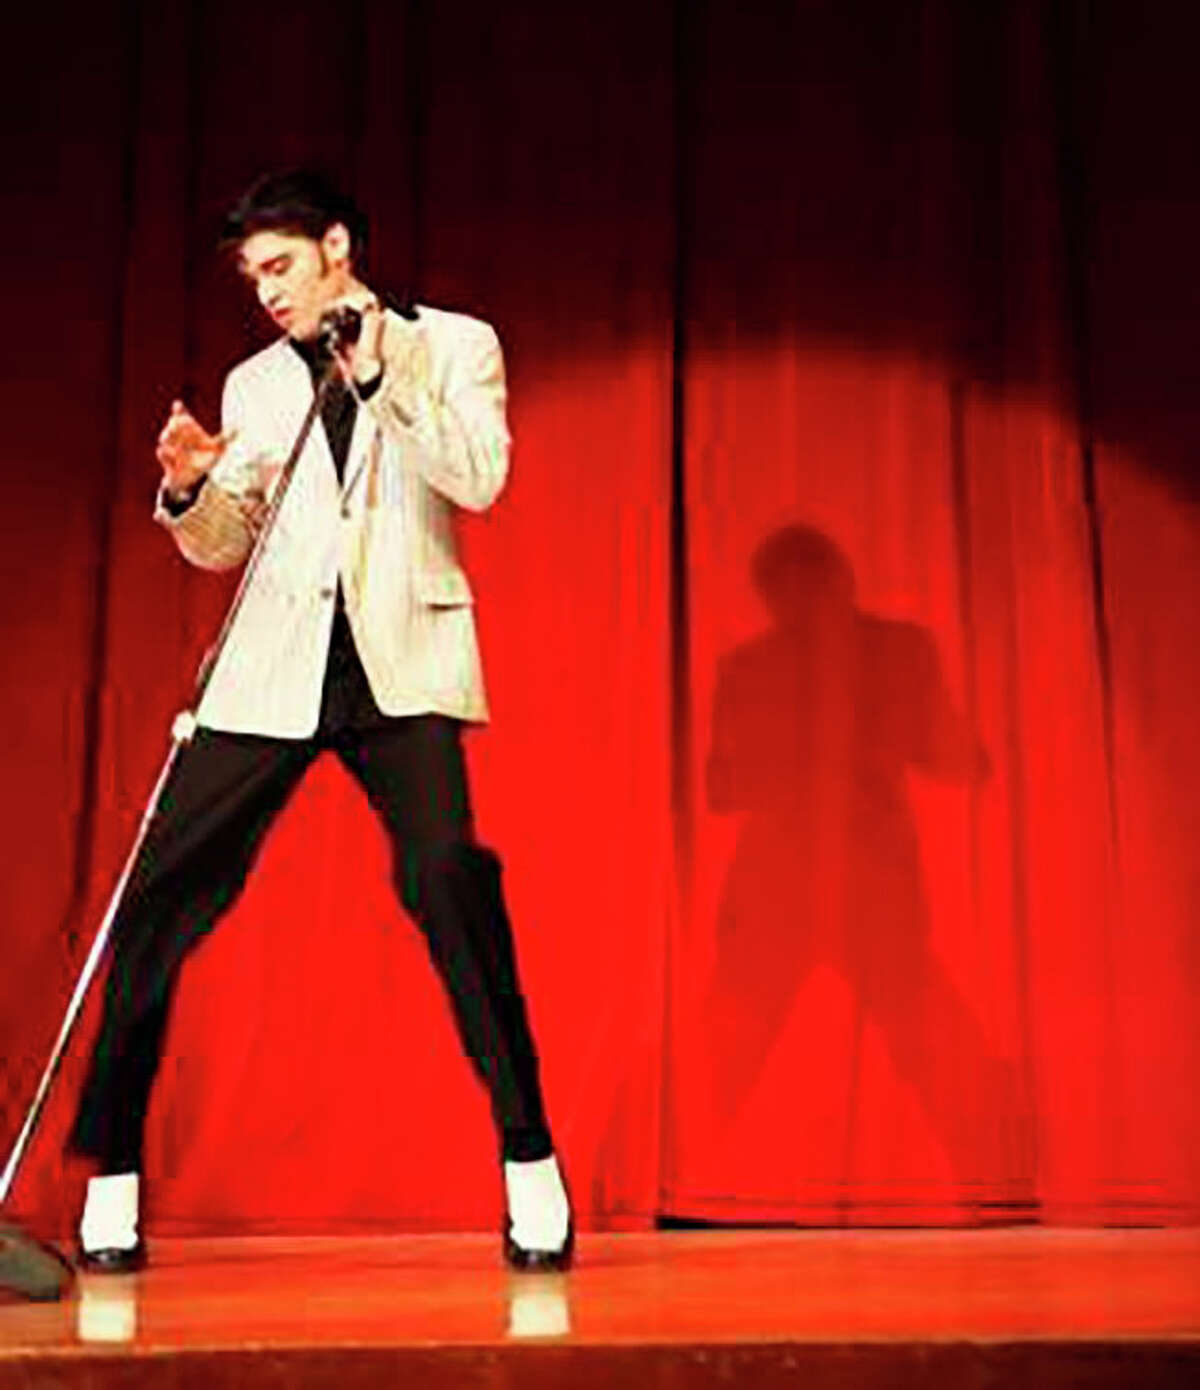 Elvis impersonator Jake Slater will be kicking off Music on the River at 6:30 p.m. Friday, July 2, at Bromley Park, following a classic car show in downtown Mecosta.